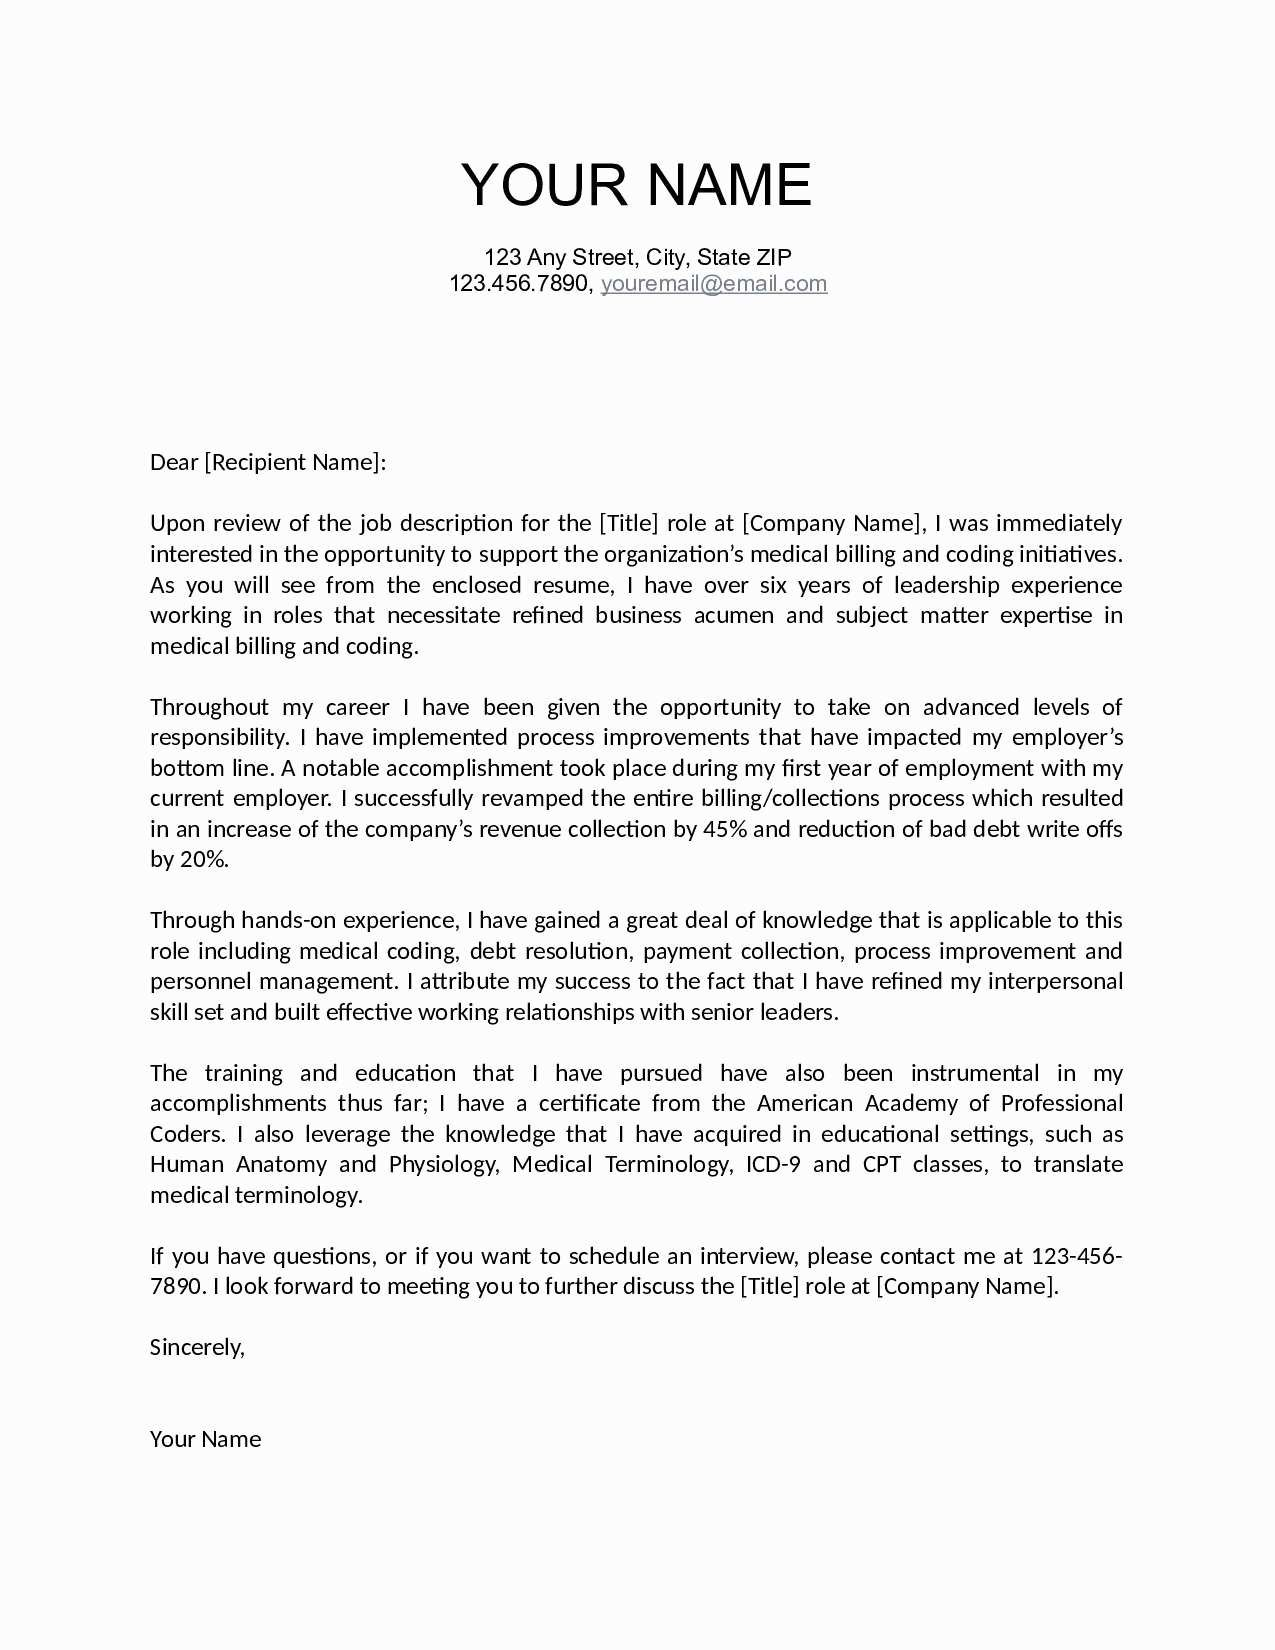 Letter Of Intent to Take Legal Action Template - How to Write A Letter Intent for A Job Save Job Fer Letter